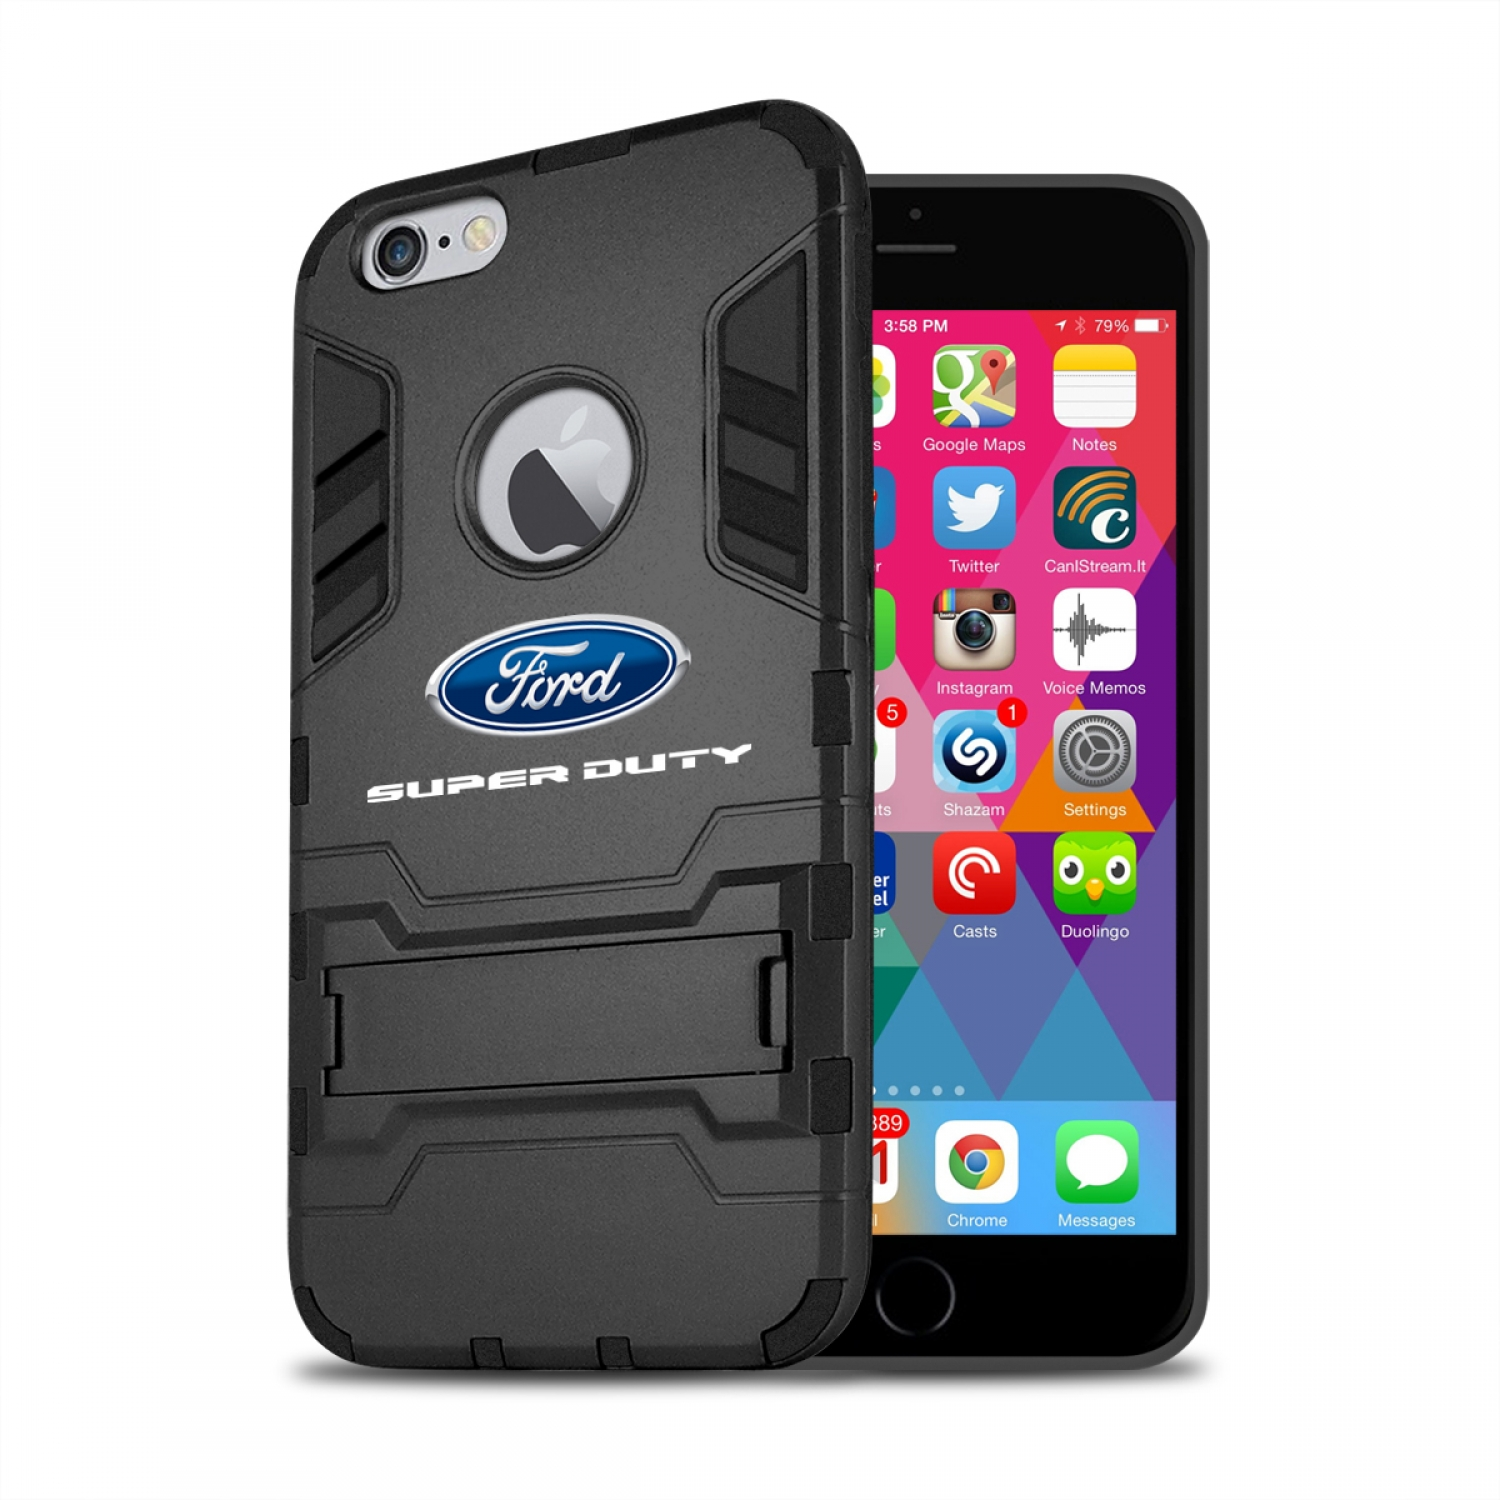 Ford Super Duty iPhone 6 6s Shockproof TPU ABS Hybrid Black Phone Case